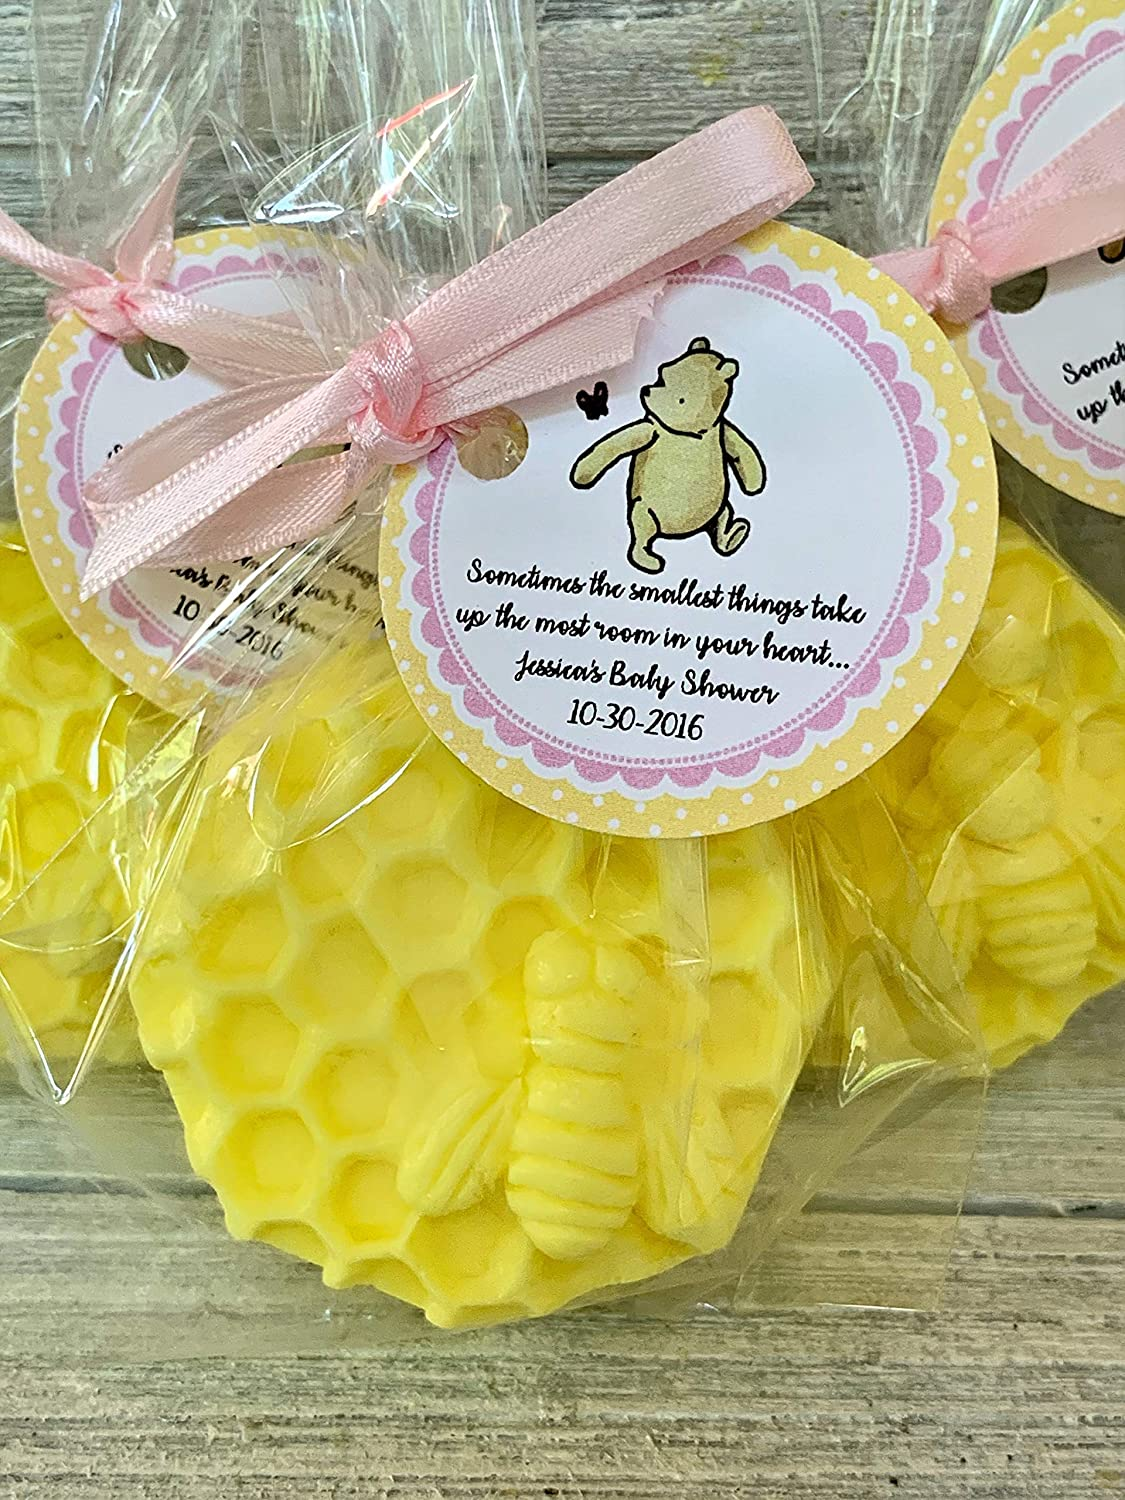 12 favors.Sprinkled with glitter Winnie The Pooh soap favorsClassic Pooh soap favors includes bag tag Choose color and scent. ribbon